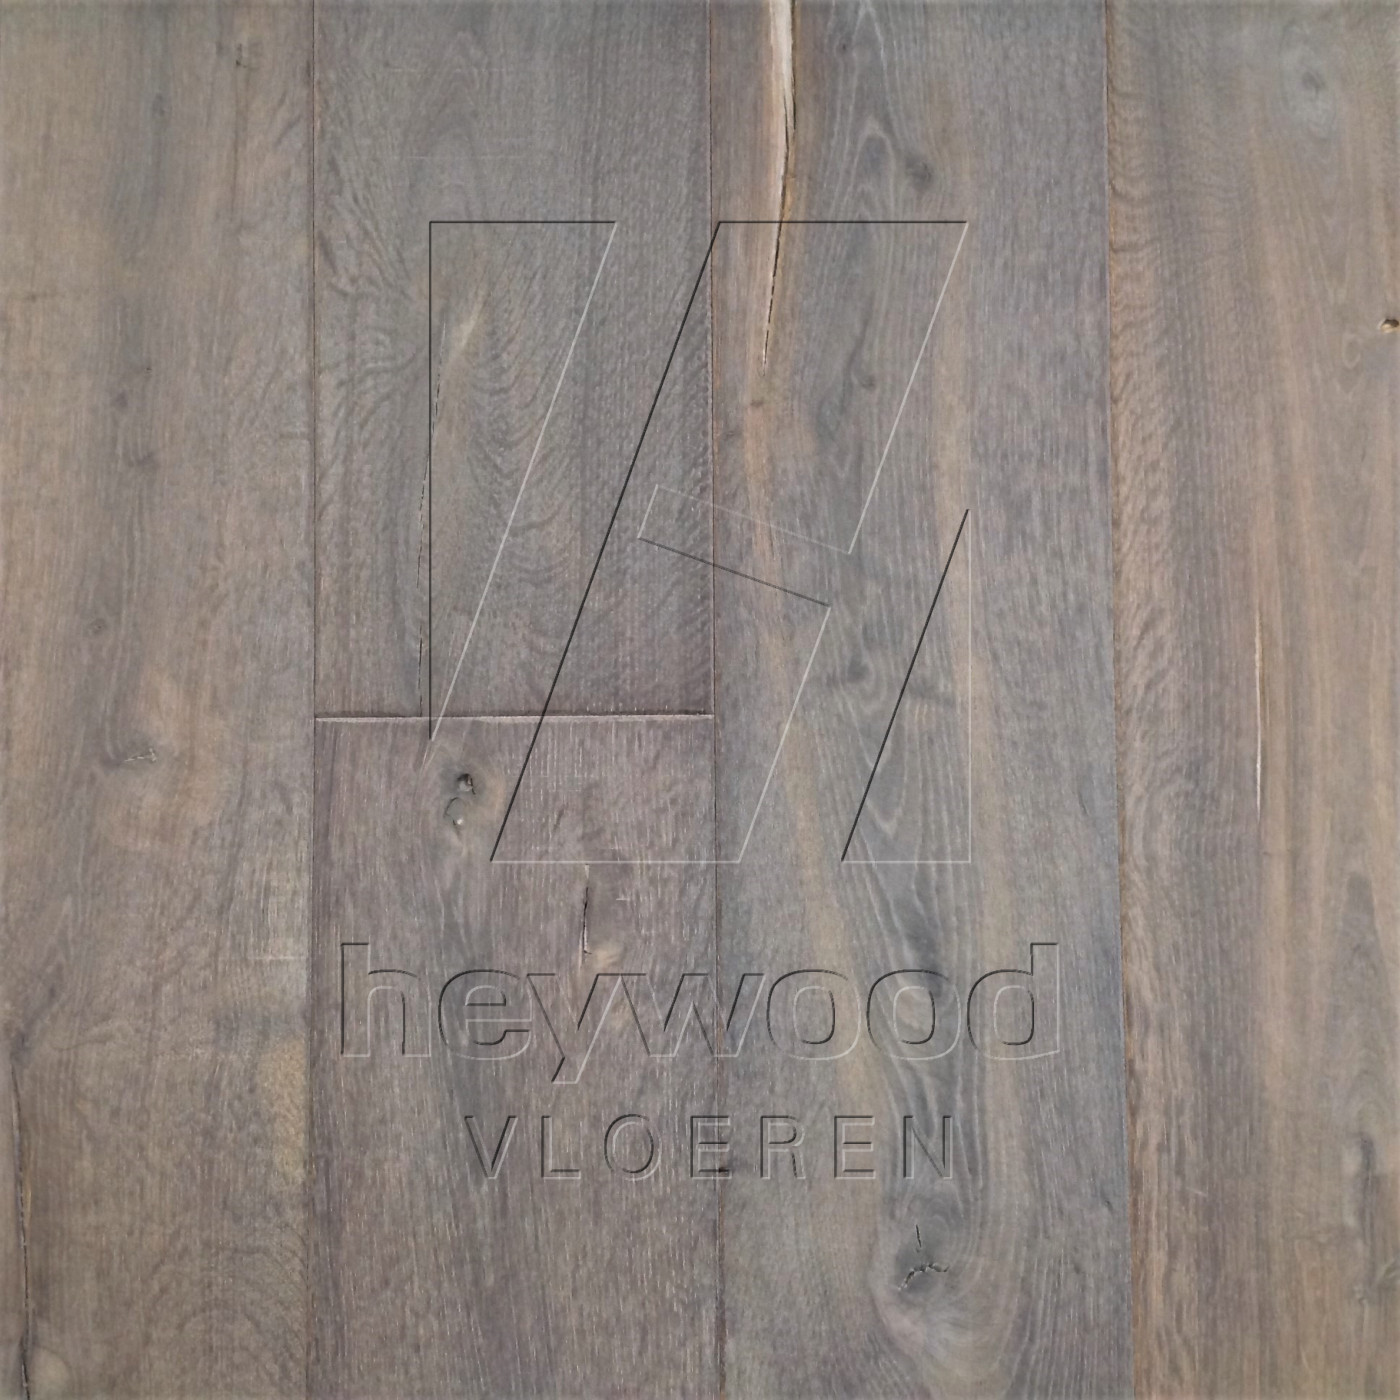 Antique Plank 'Gran Paradiso' in Aged Antique Surface of Aged Hardwood Floors